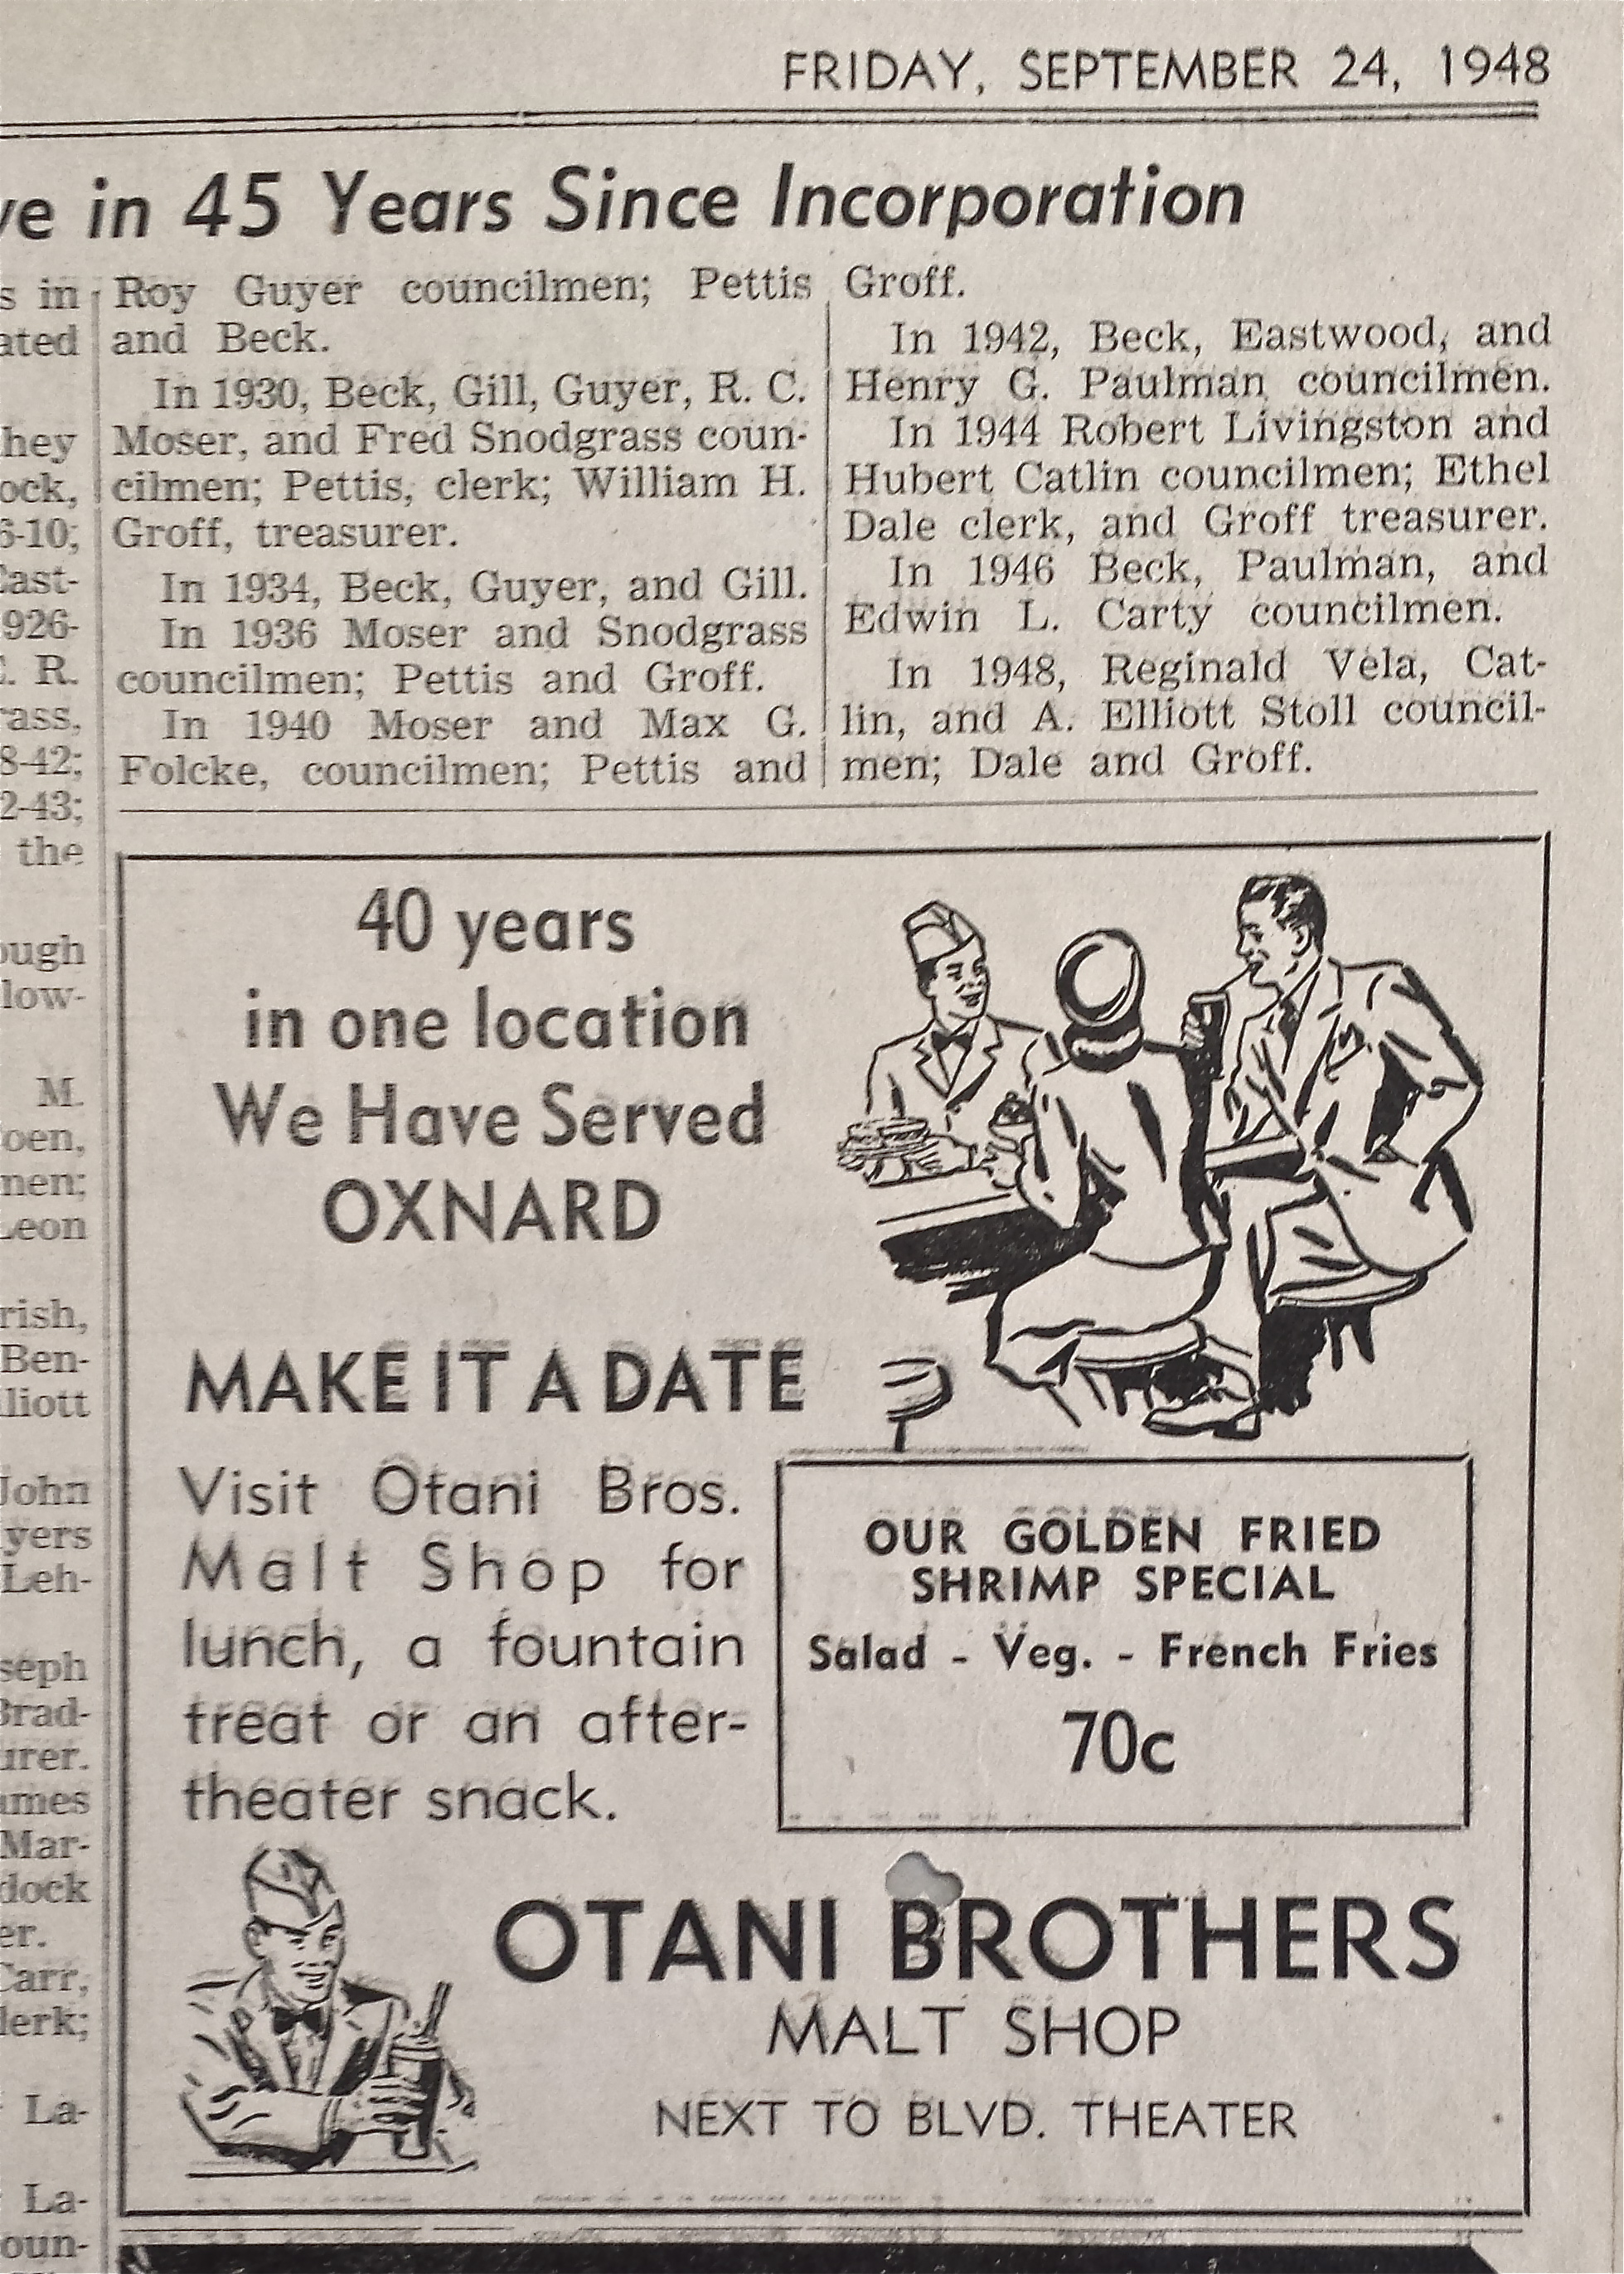 """Newspaper clipping from 1948 from Otani Brothers Malt shop. """"40 years in one location We Have Served OXNARD"""""""